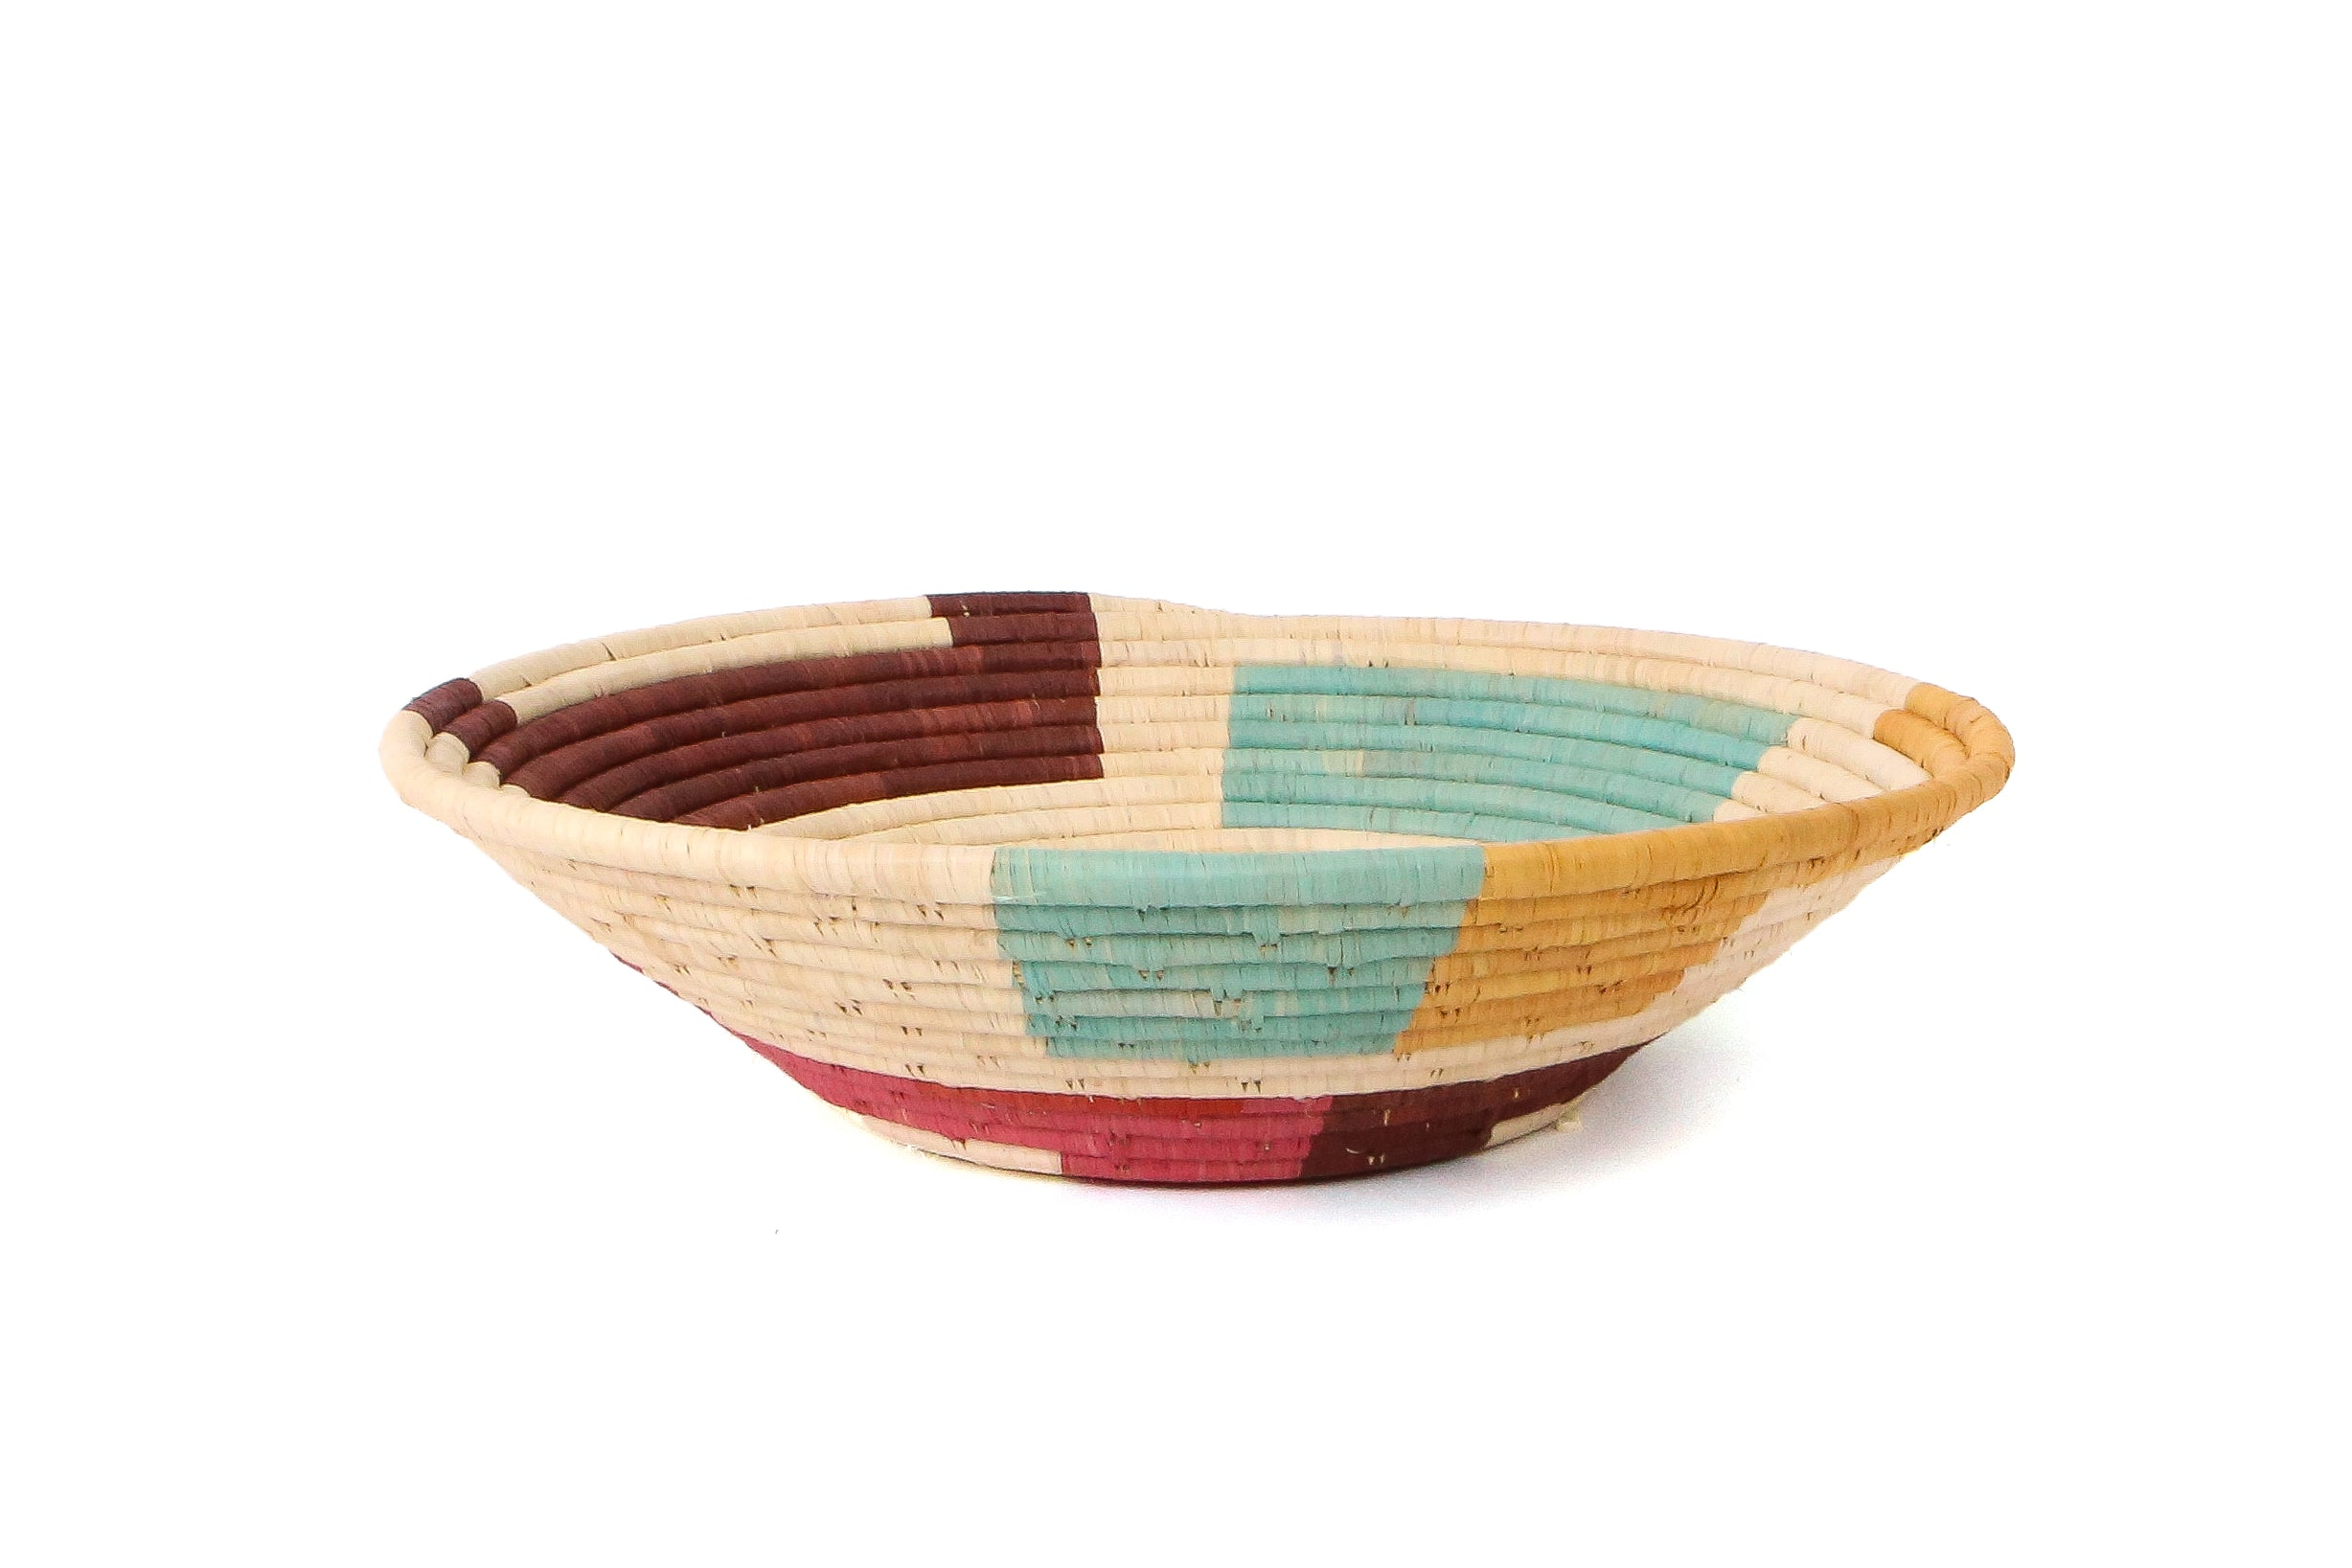 Vivid Msanii Jumbo Bowl - KAZI - Artisan made high quality home decor and wall art